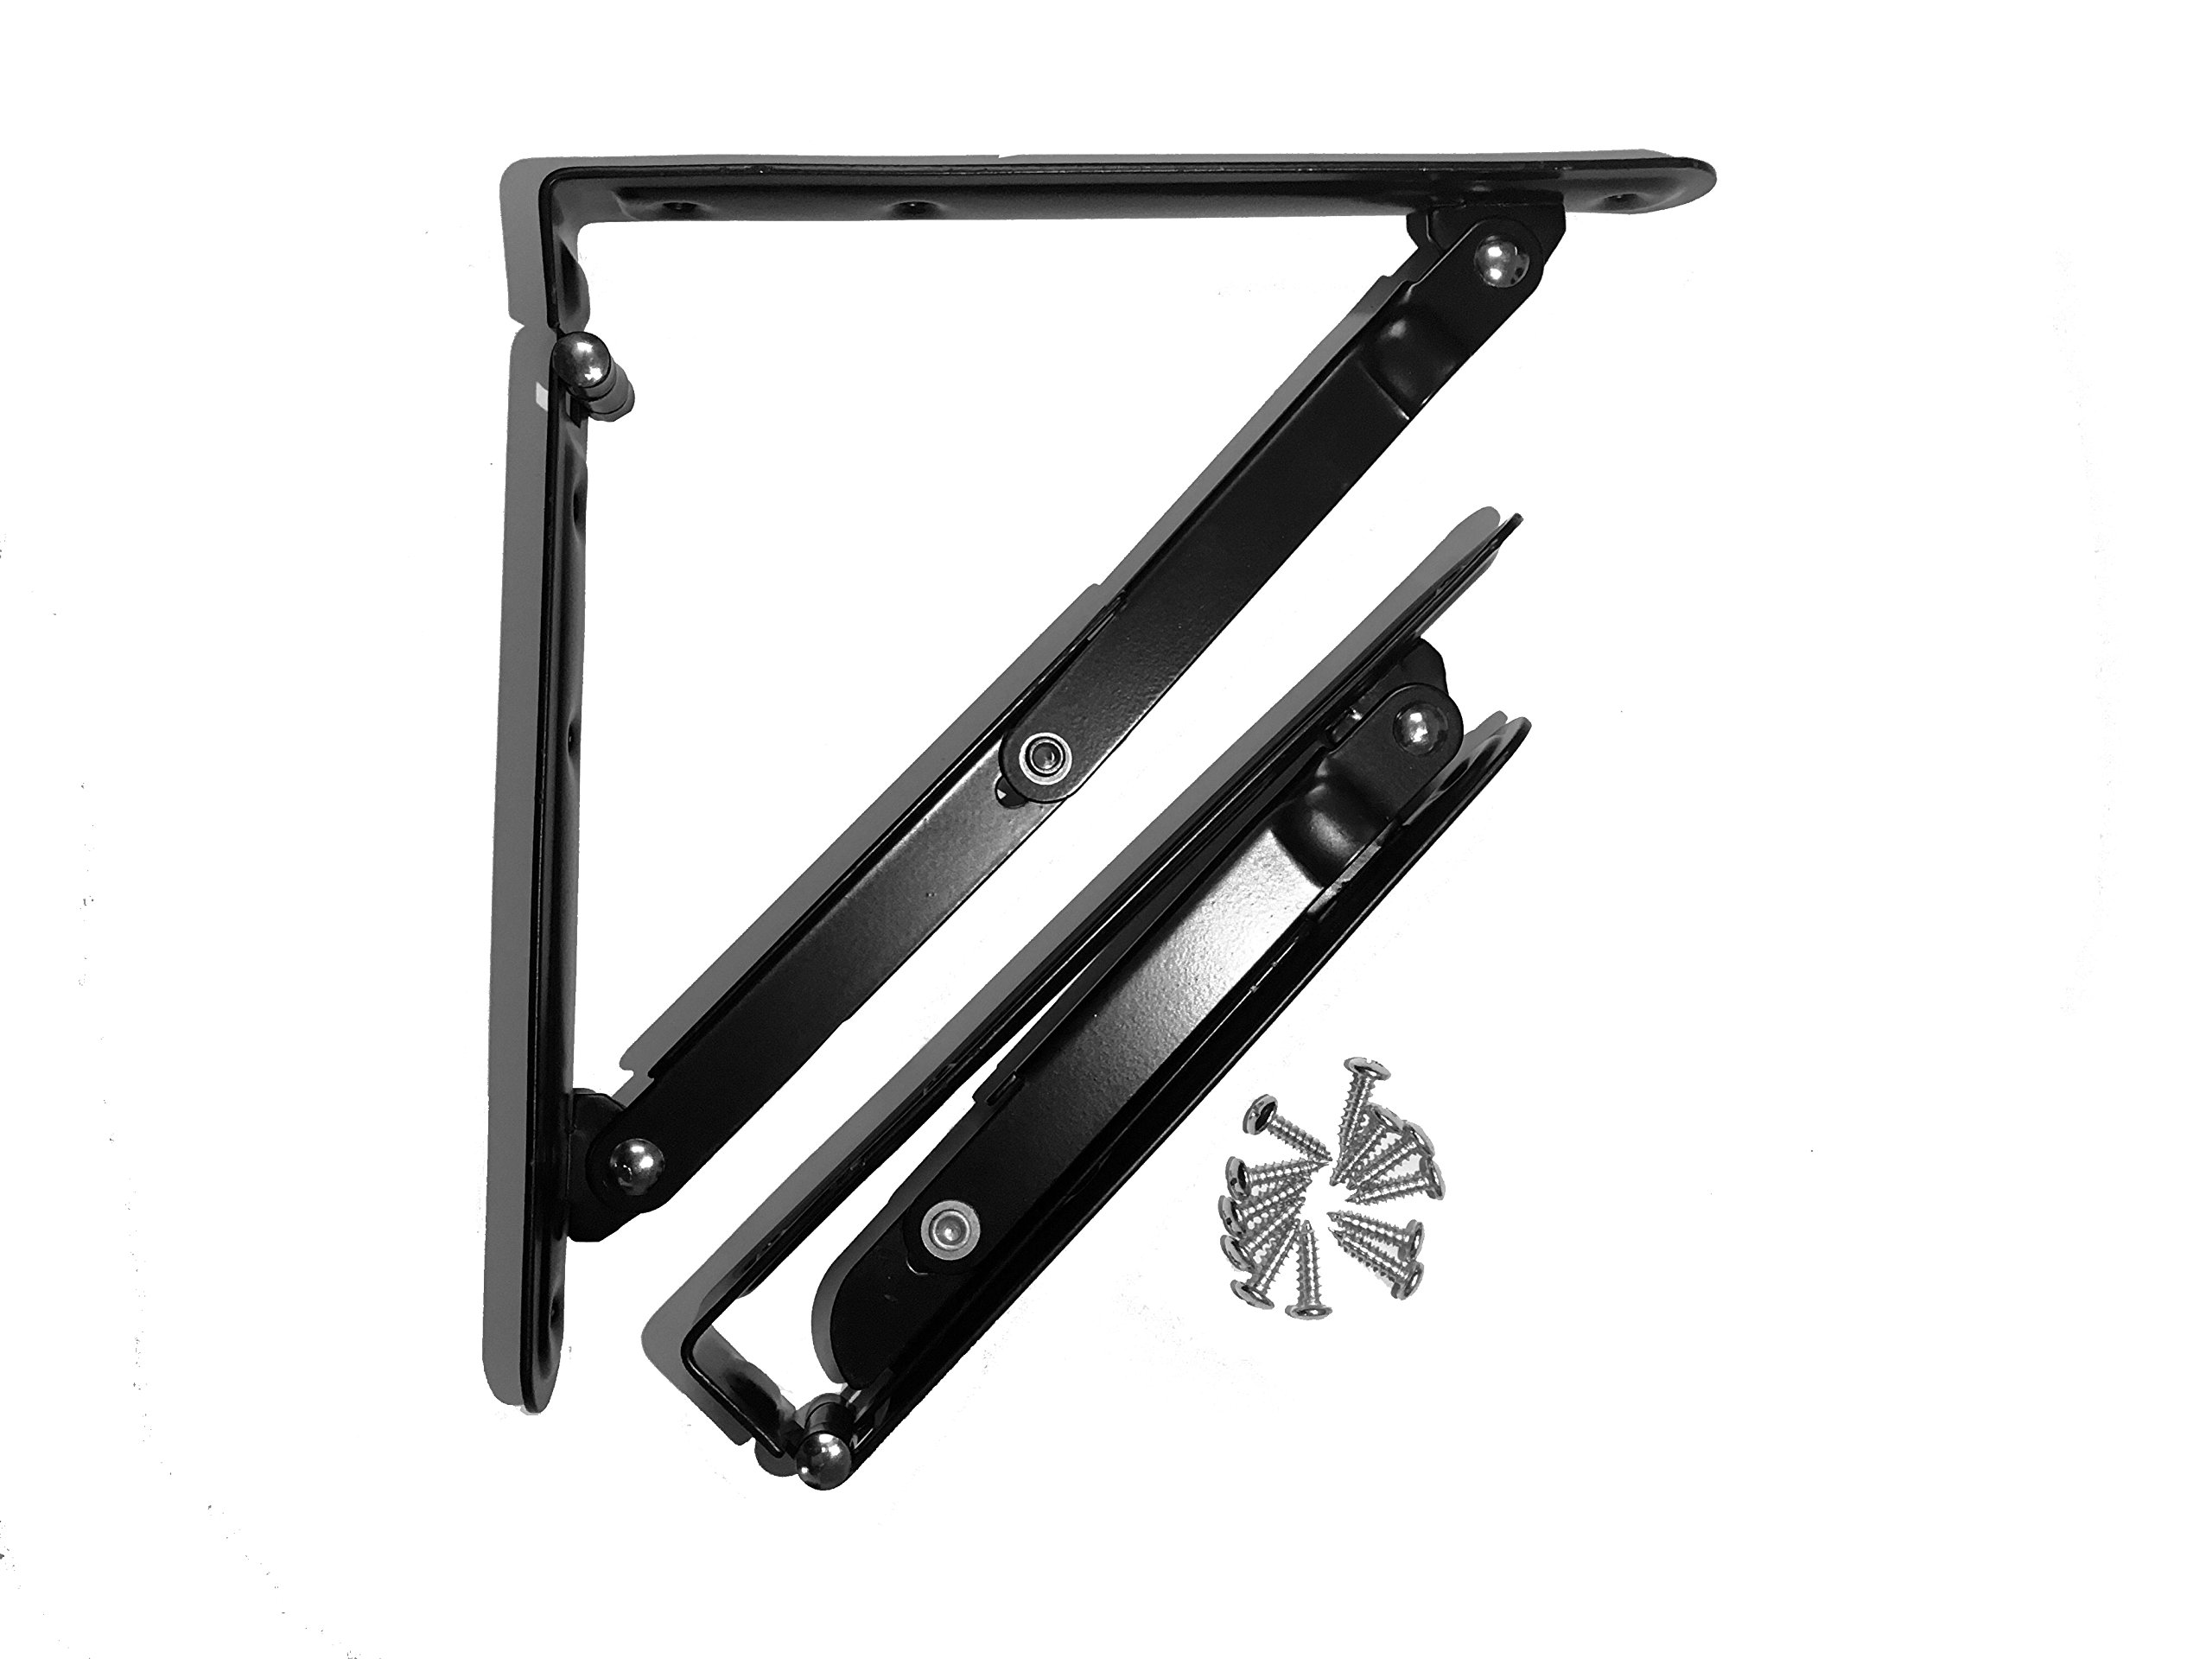 2 Pcs Folding Shelf Bracket Stainless Steel Folding Shelf Bench Table Perfect for Wall Hanging Shelves, Black by Forfuture-go